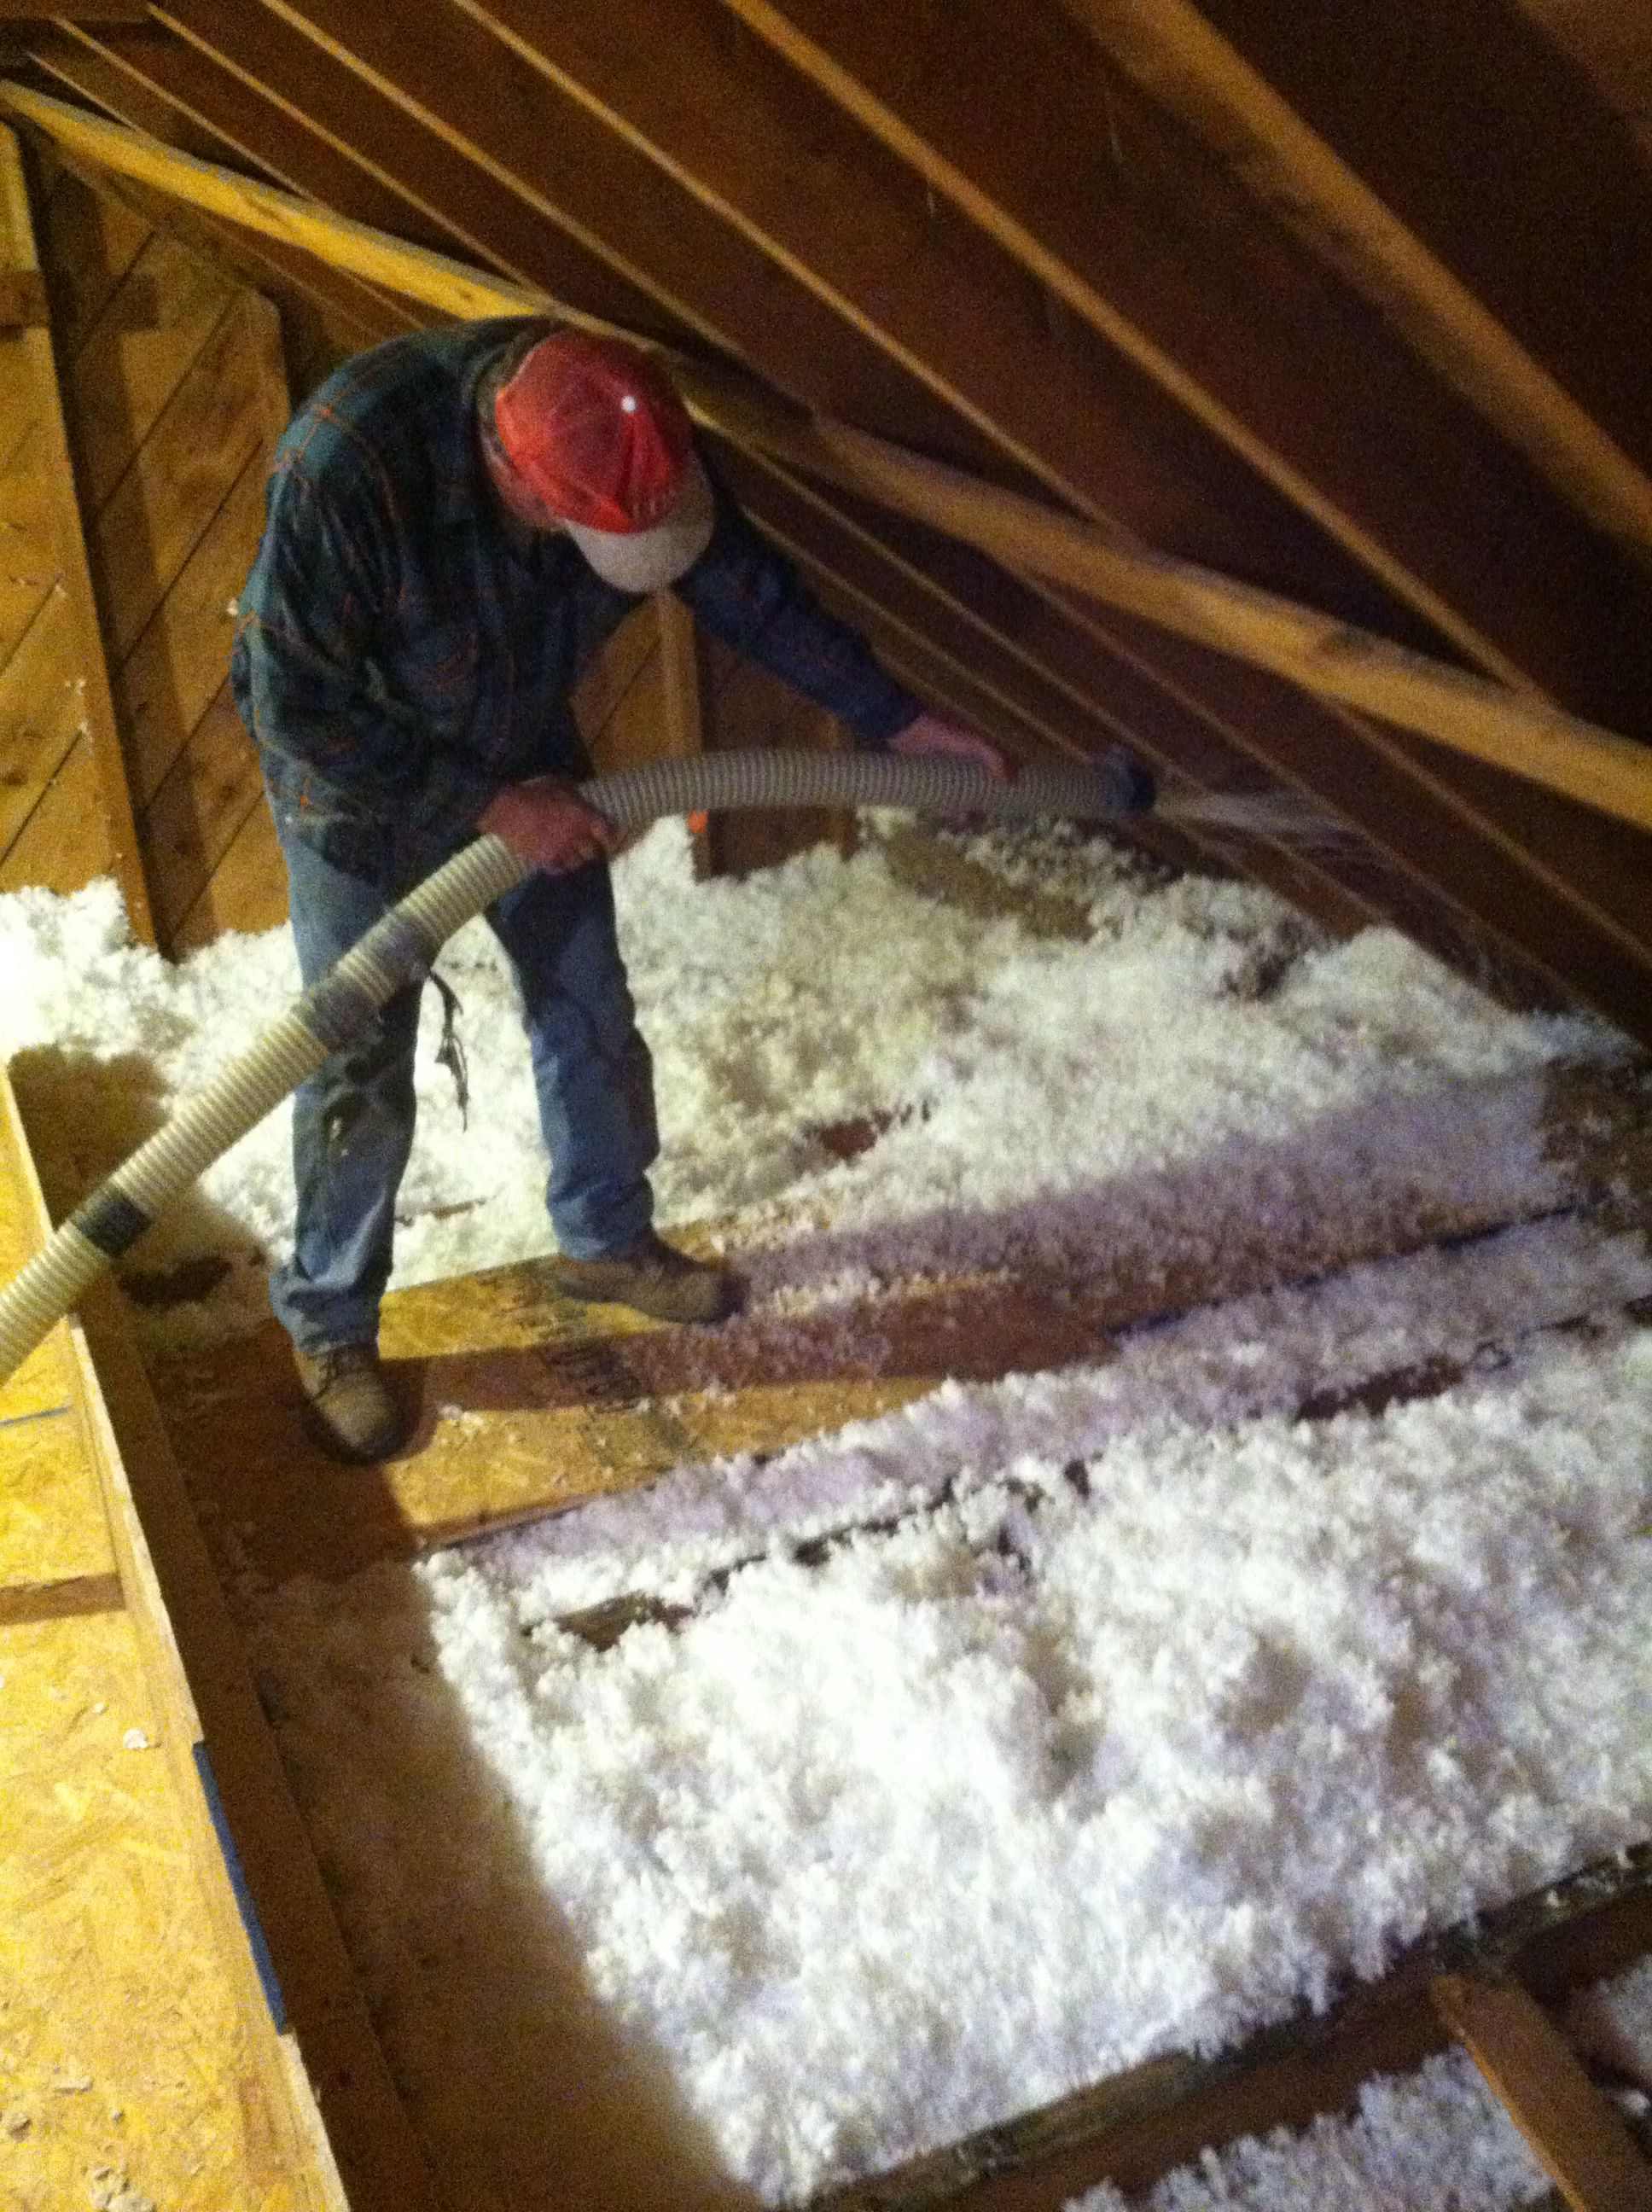 Adding Blown In Fiberglass Insulation To Attic 15 Inches Fiberglass Insulation Remodeling Projects Insulation